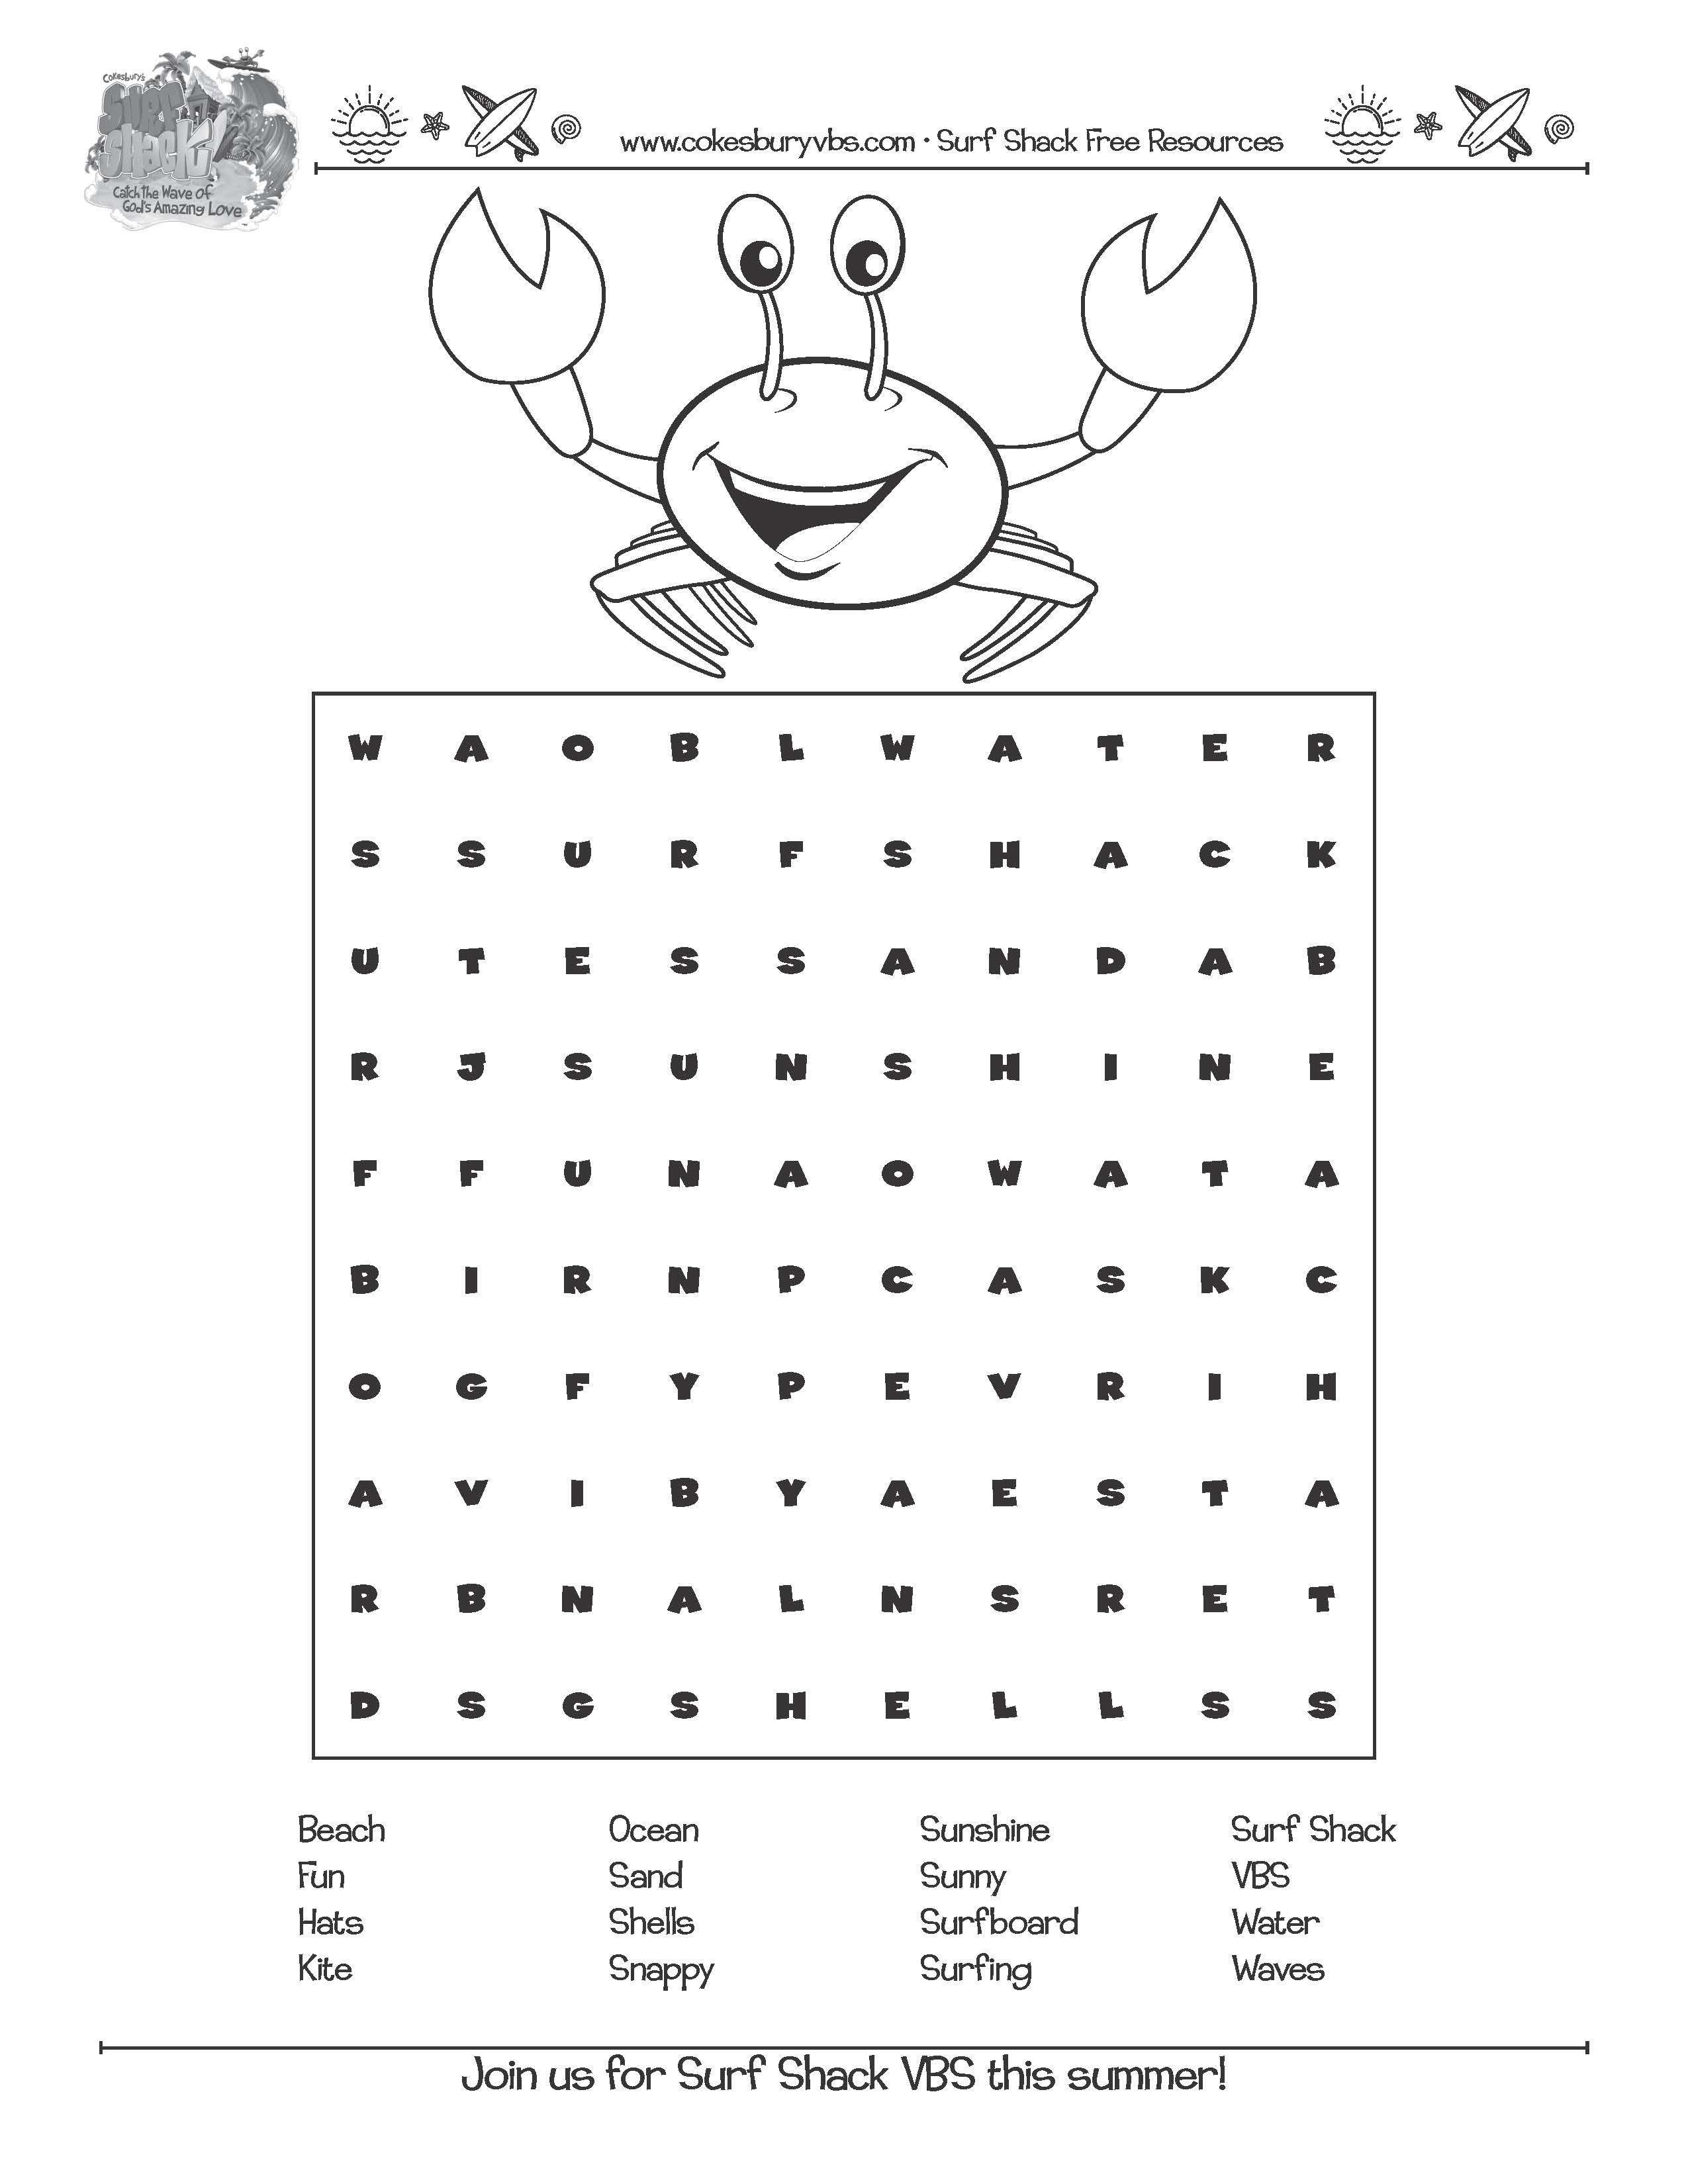 Enjoy Snappy Word Search Kesburyvbs